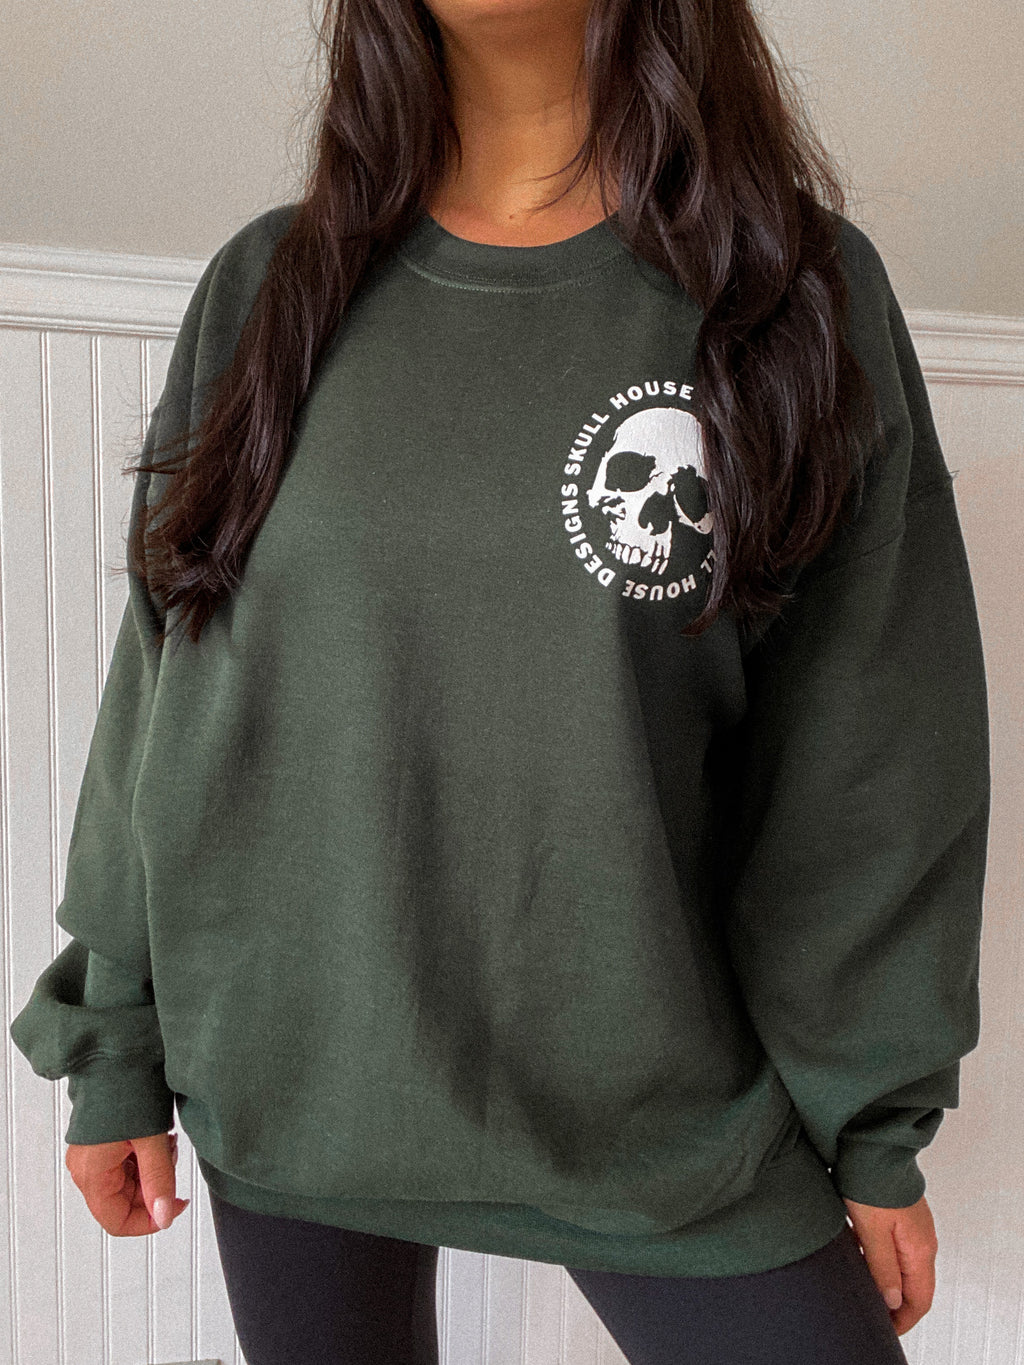 Skull House Oversized Sweater: Hunter Green